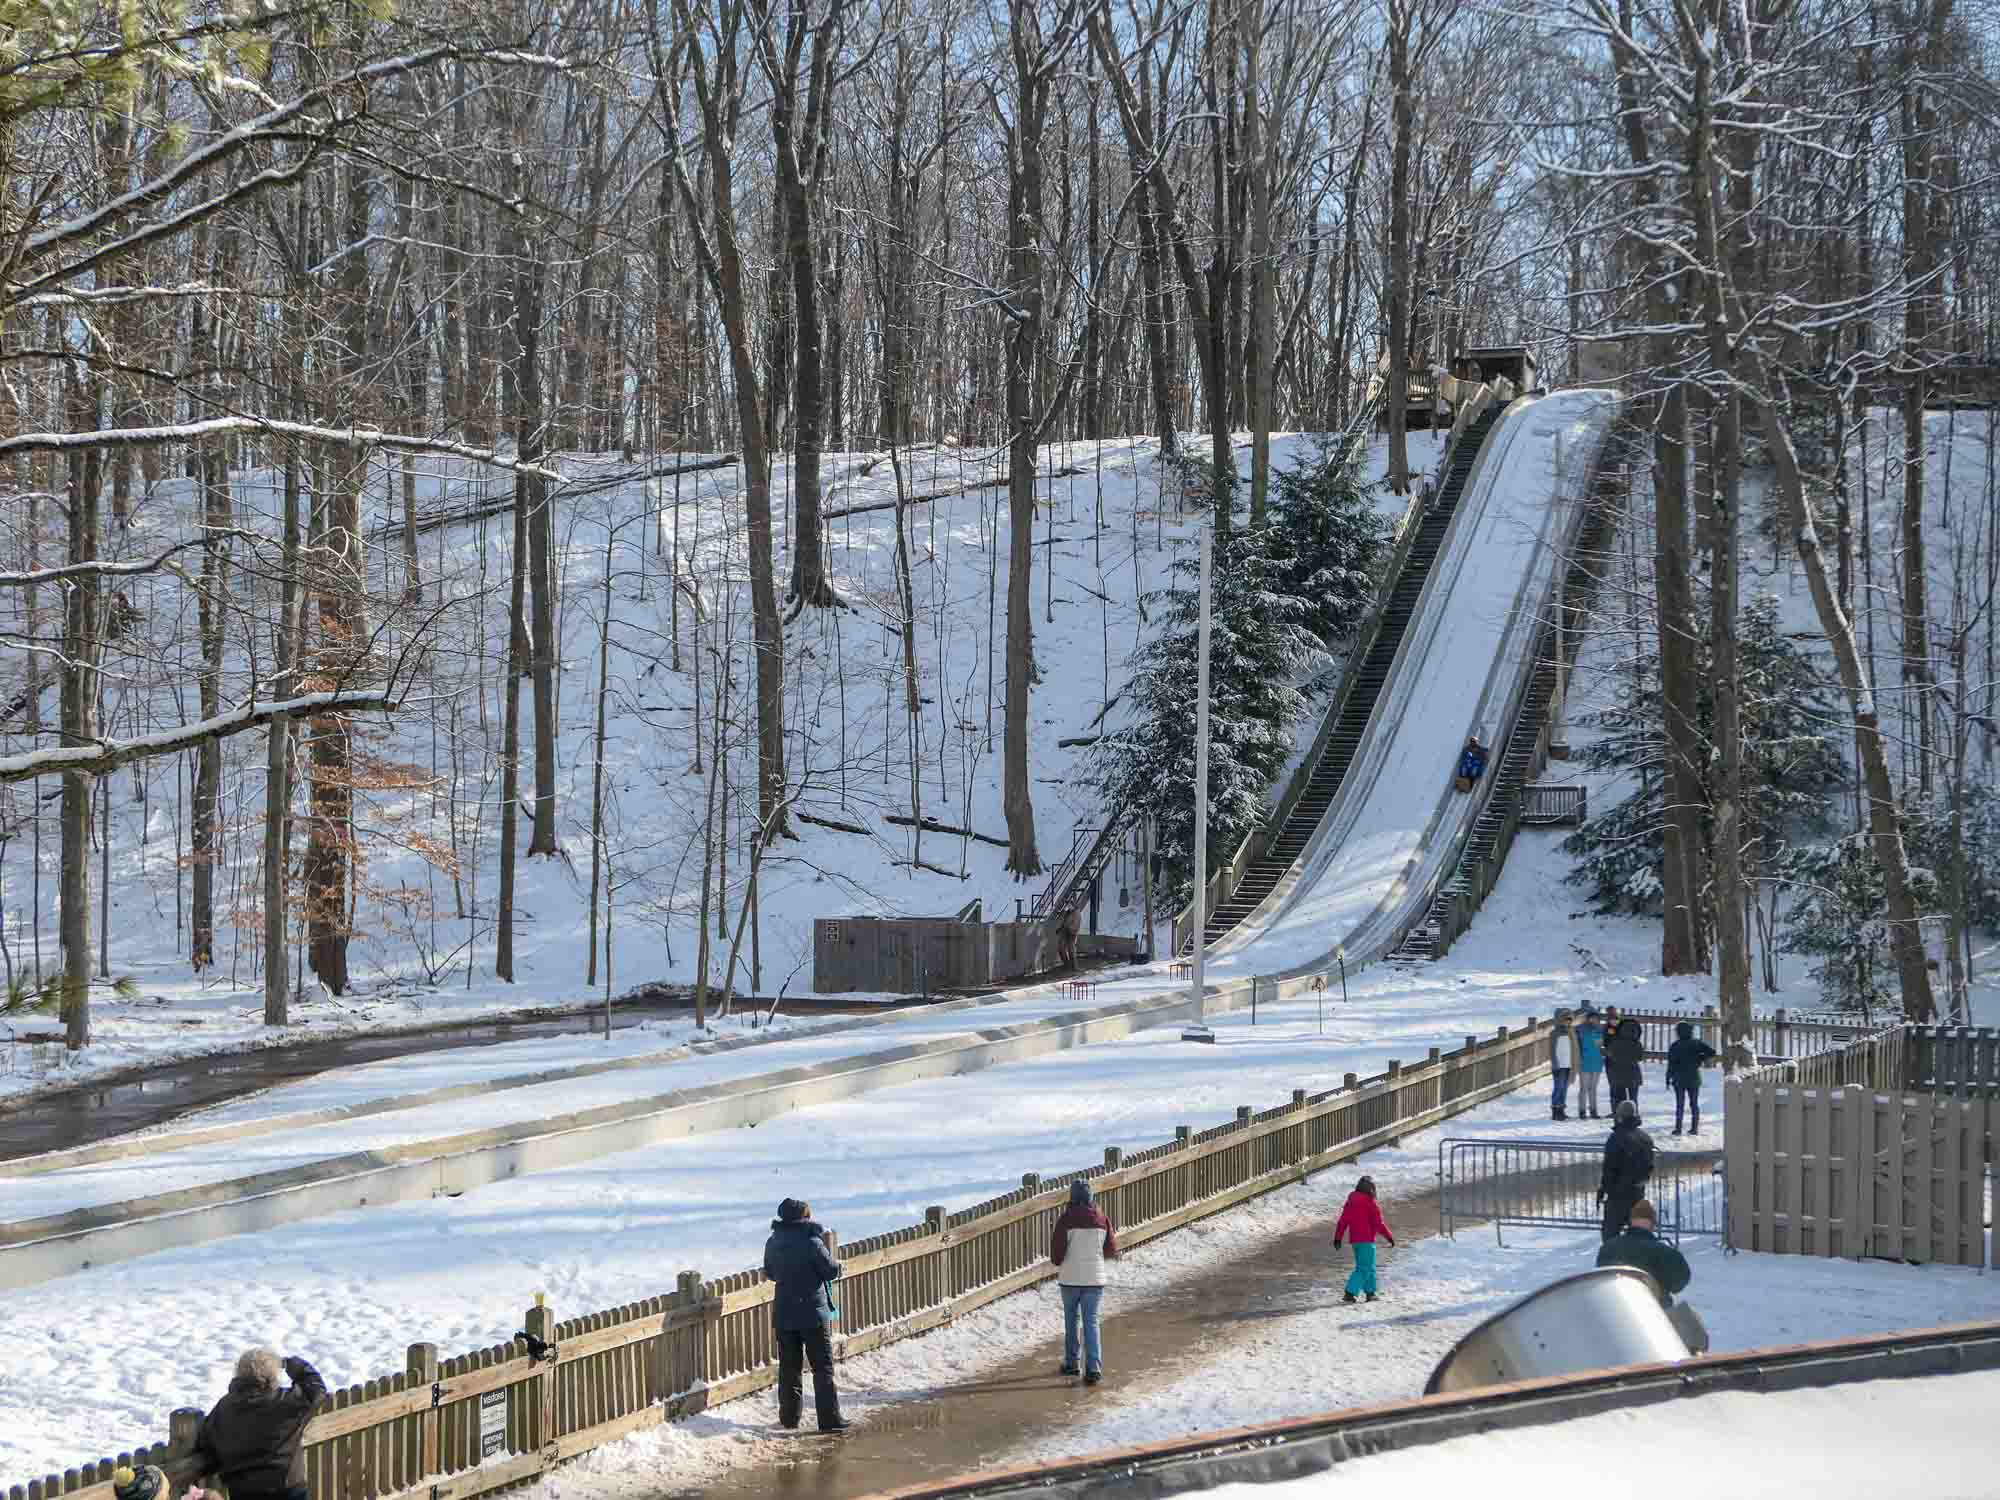 Winter Adventure at the Cleveland Metroparks Toboggan Chutes